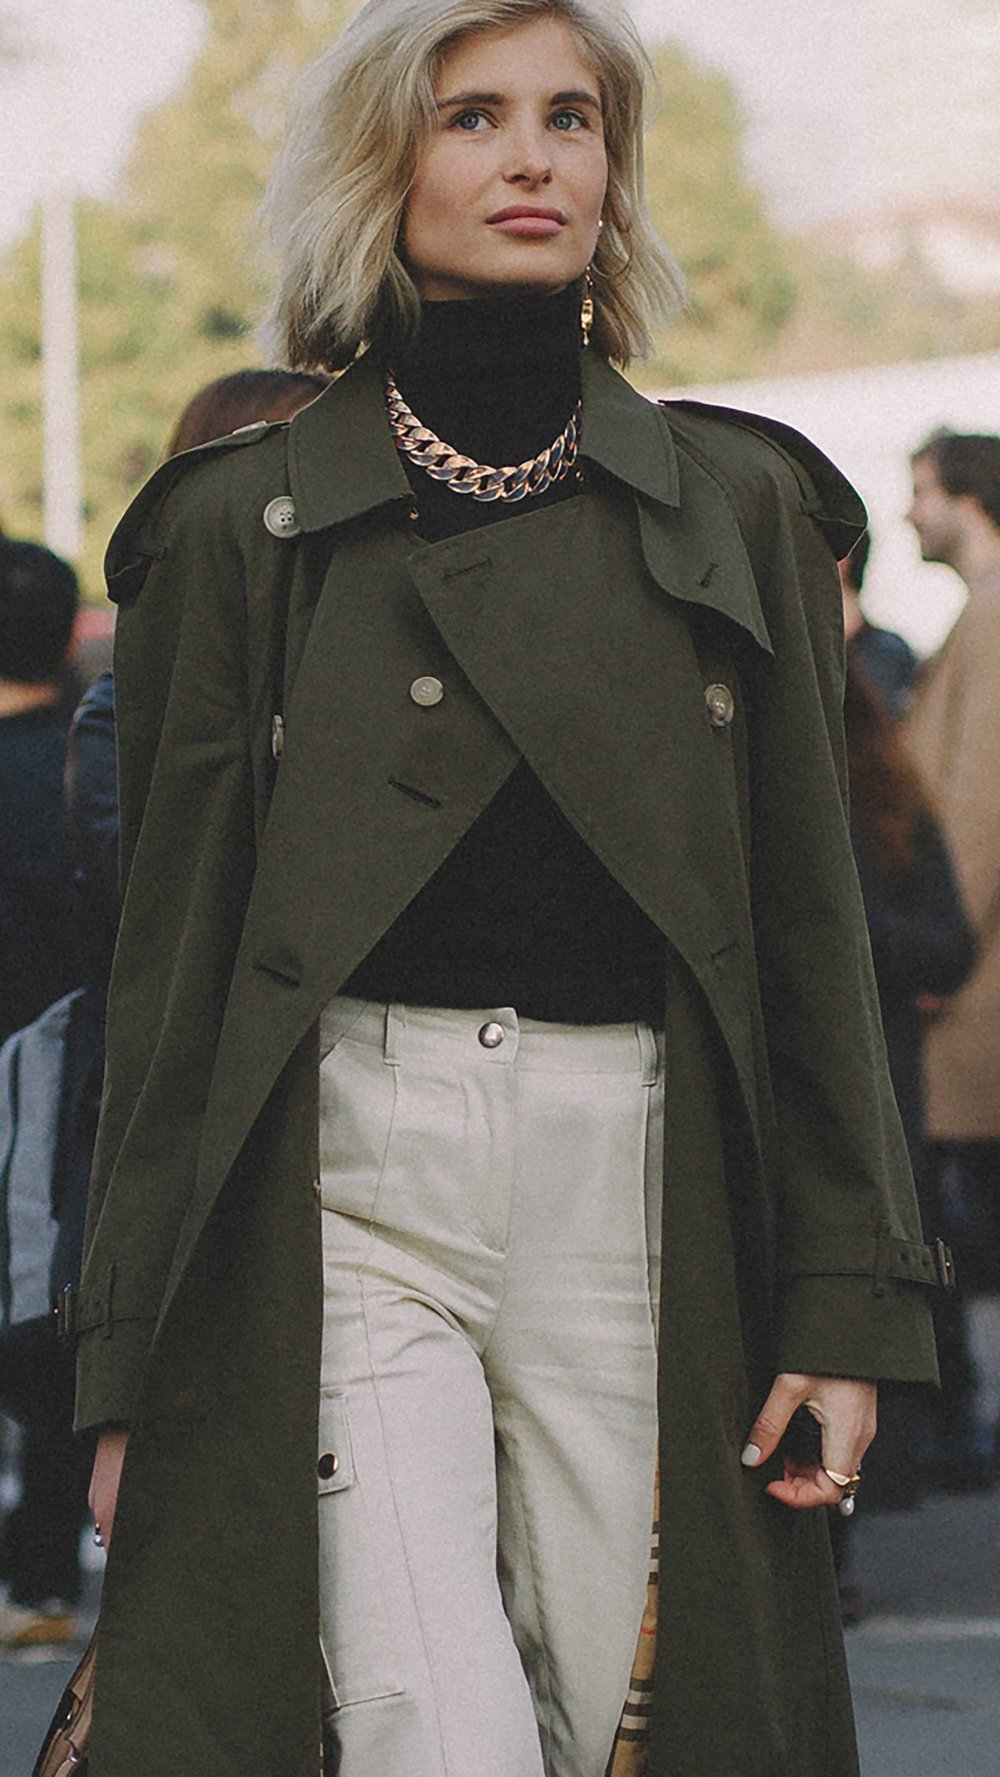 est outfits of Milan Fashion Week street style day two MFW FW19 23.jpg